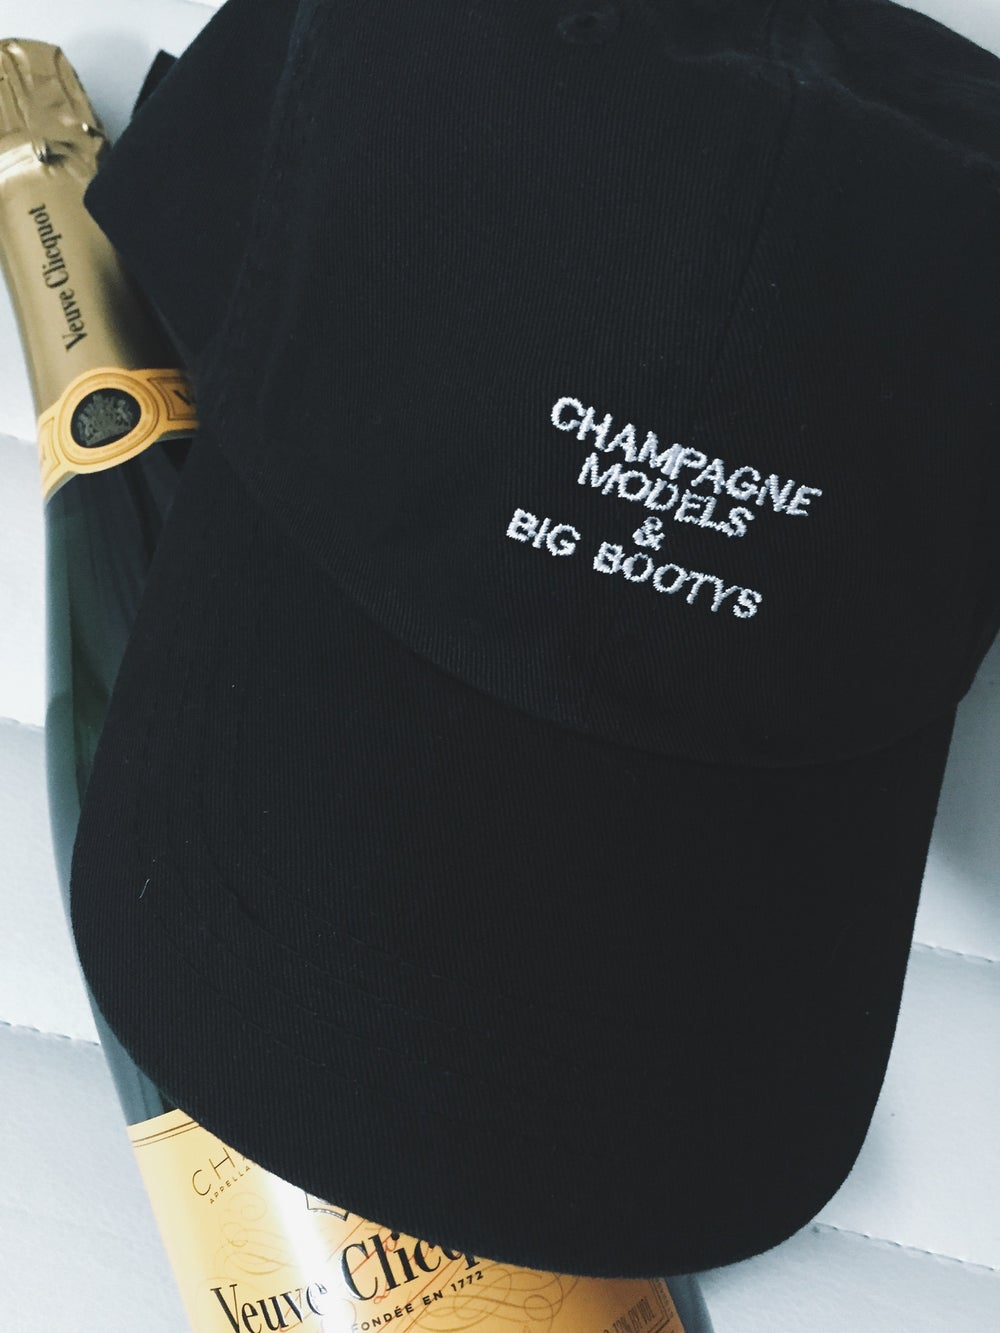 Image of Champagne, Models, & Big Bootys dad hat